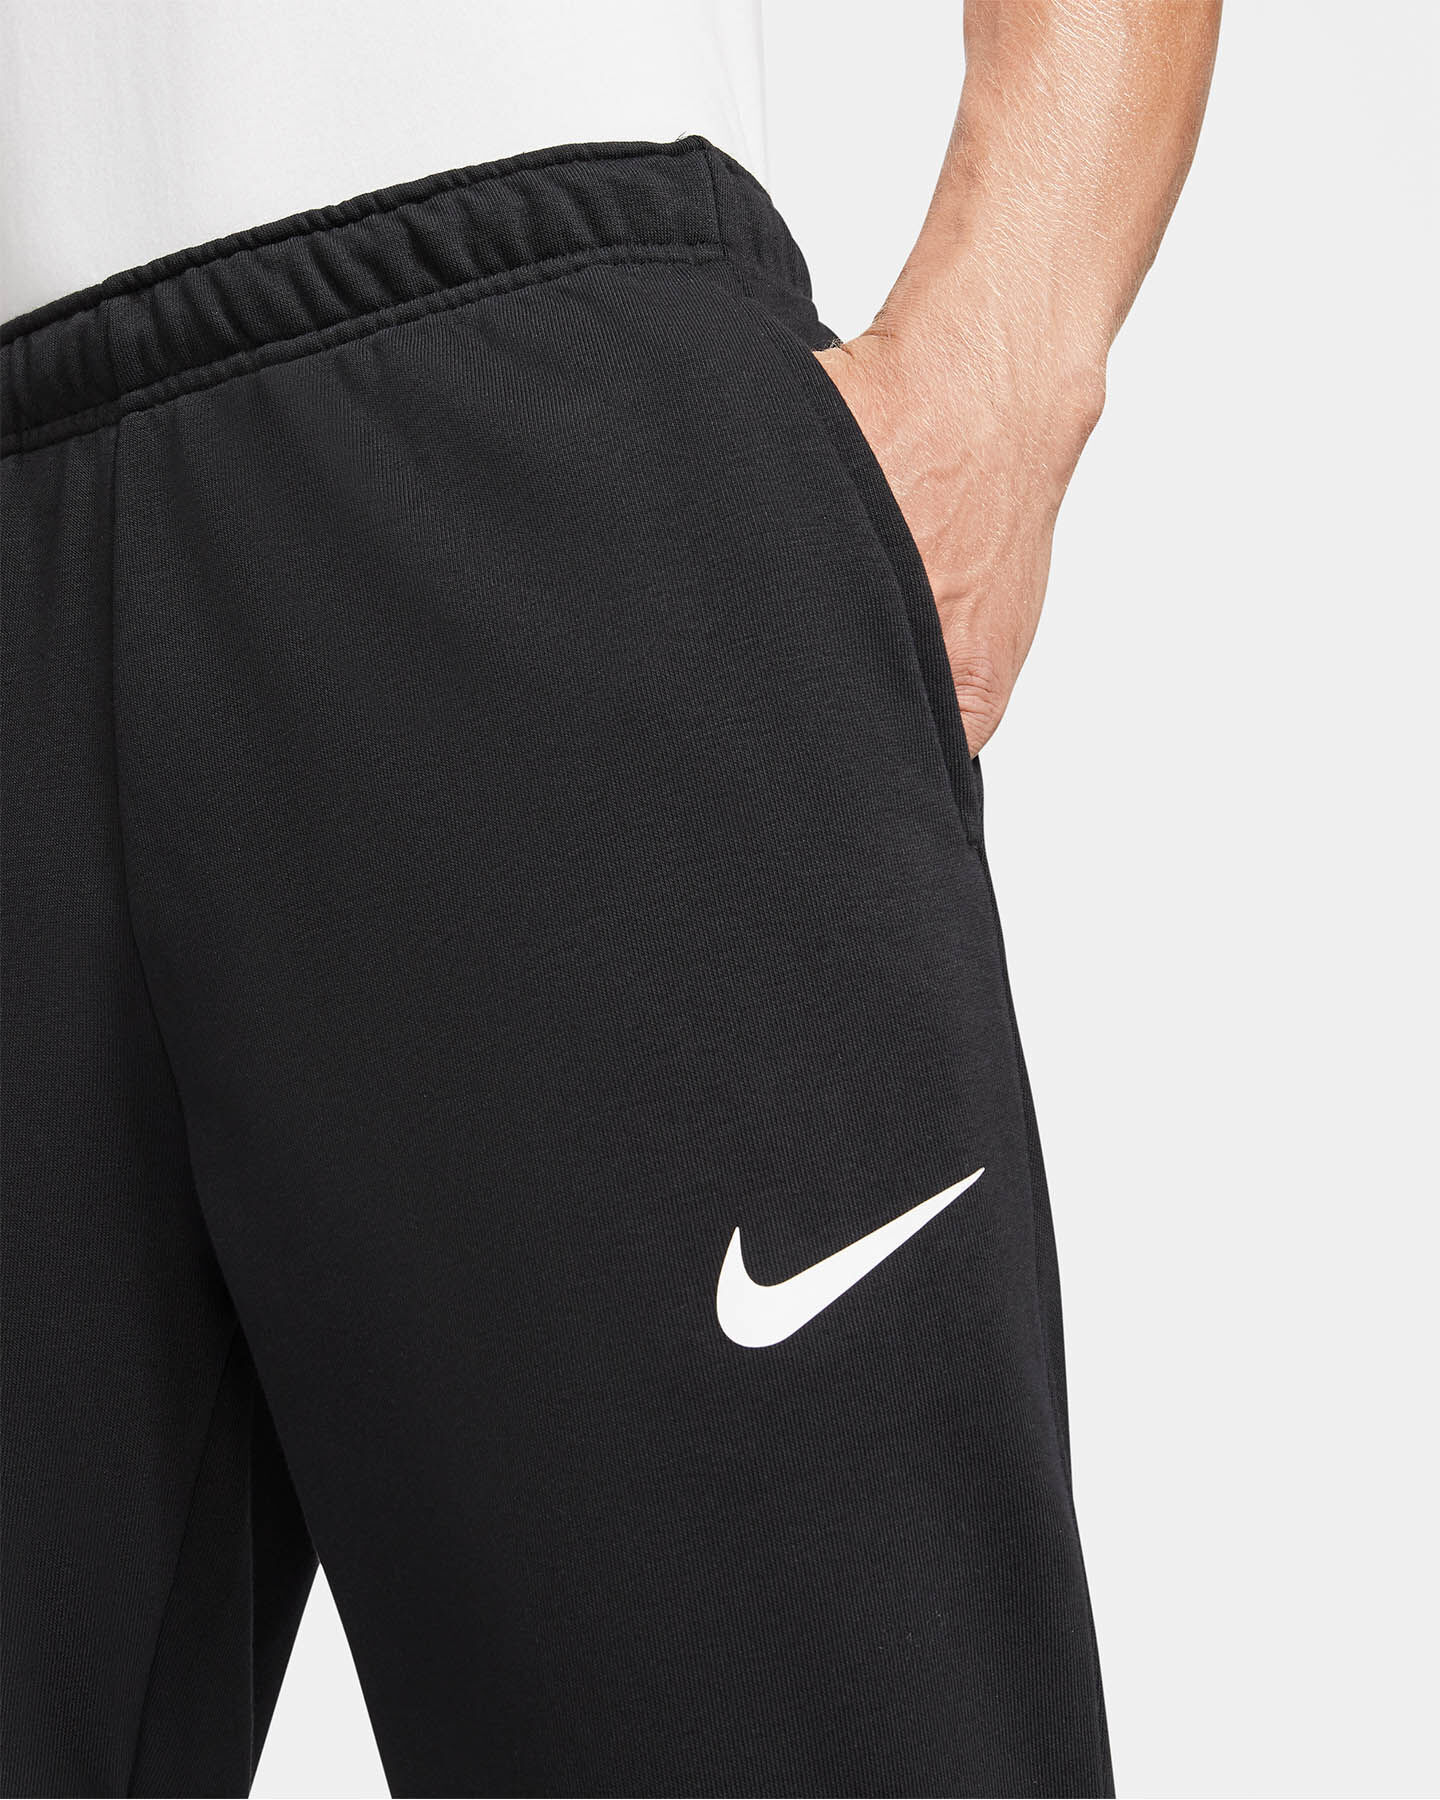 Pantalone training NIKE DRY TAPER M S5269705 scatto 2